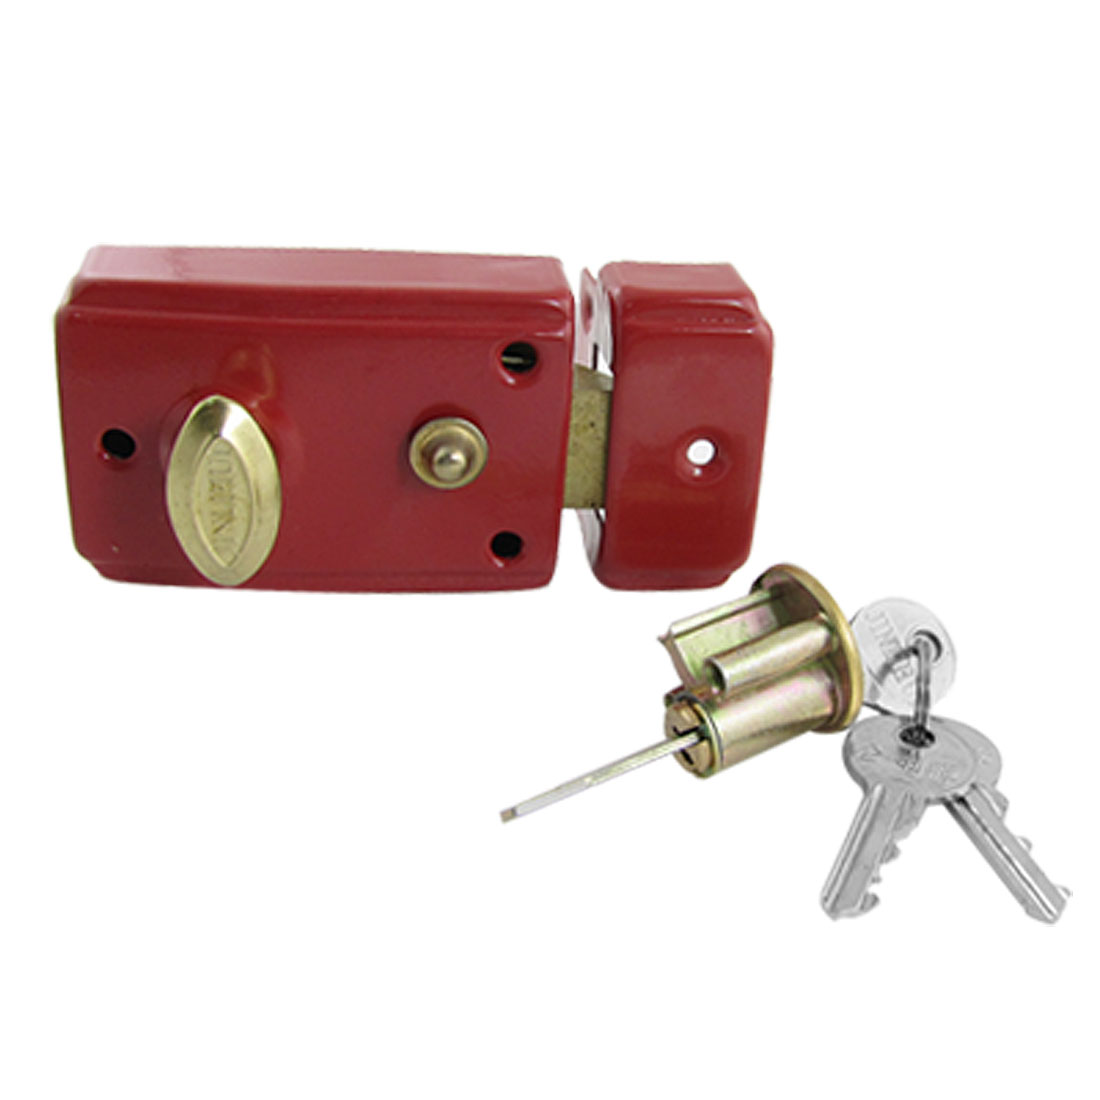 Dormitory Door Red Single Bolt Latch Lock w 3 Keys